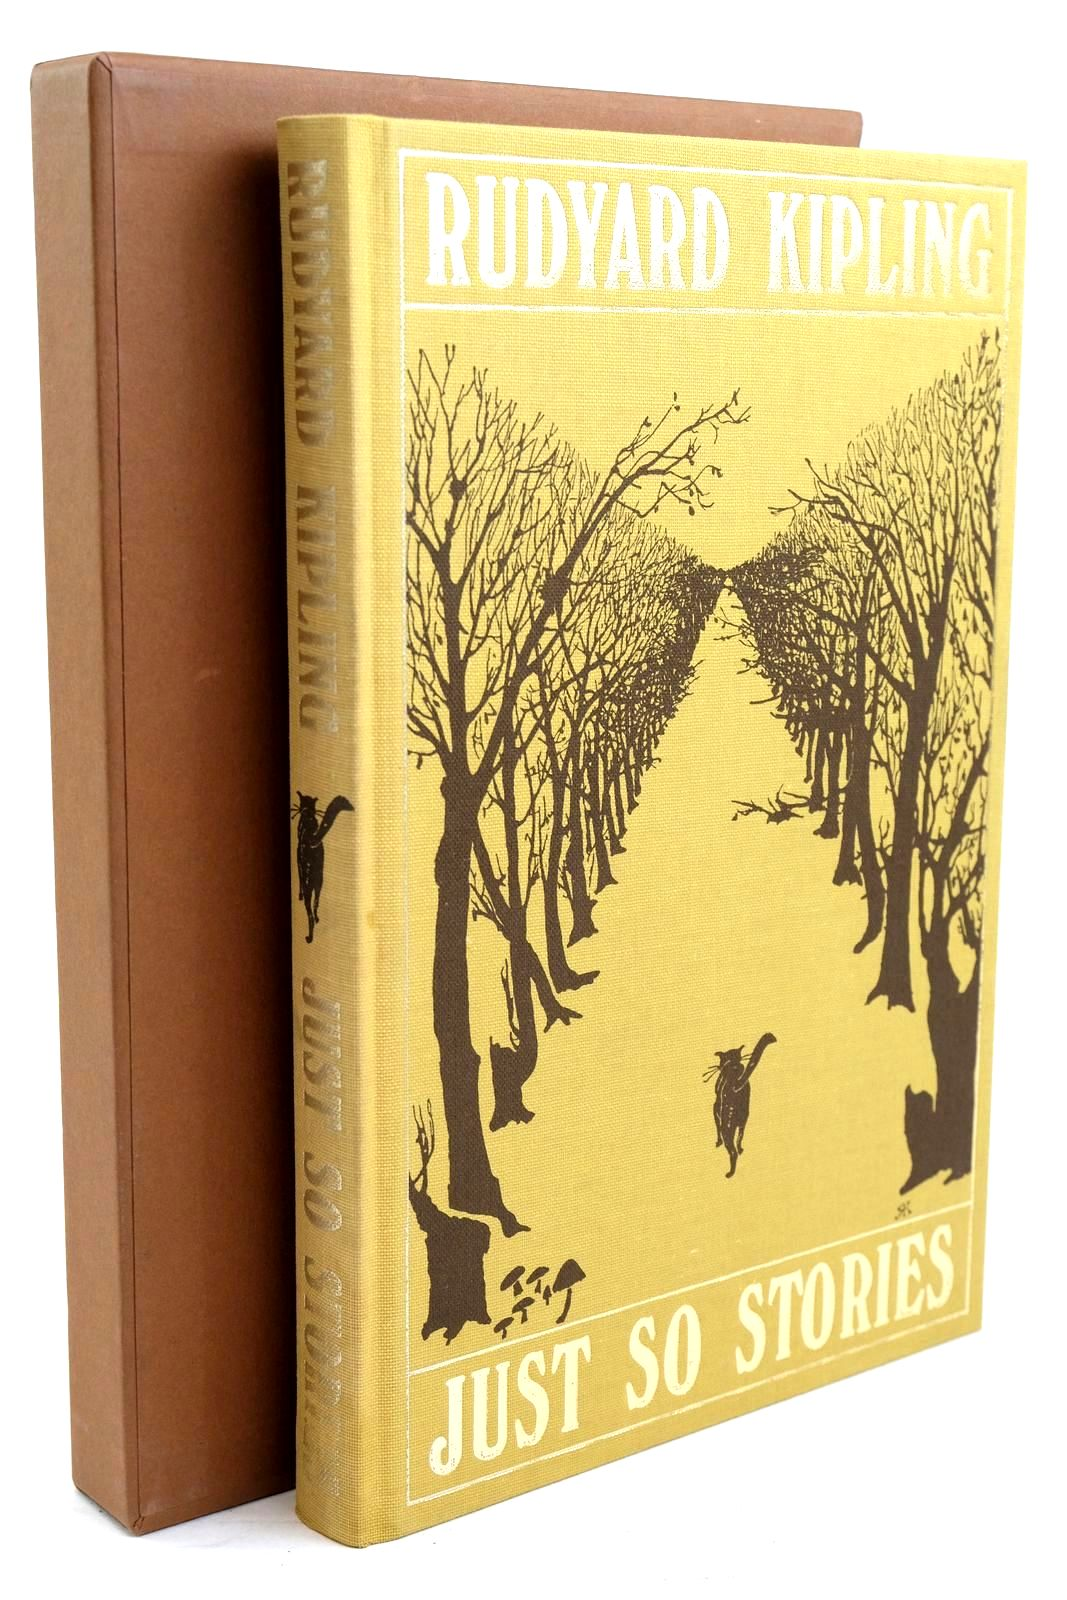 Photo of JUST SO STORIES written by Kipling, Rudyard illustrated by Kipling, Rudyard published by Folio Society (STOCK CODE: 1320571)  for sale by Stella & Rose's Books